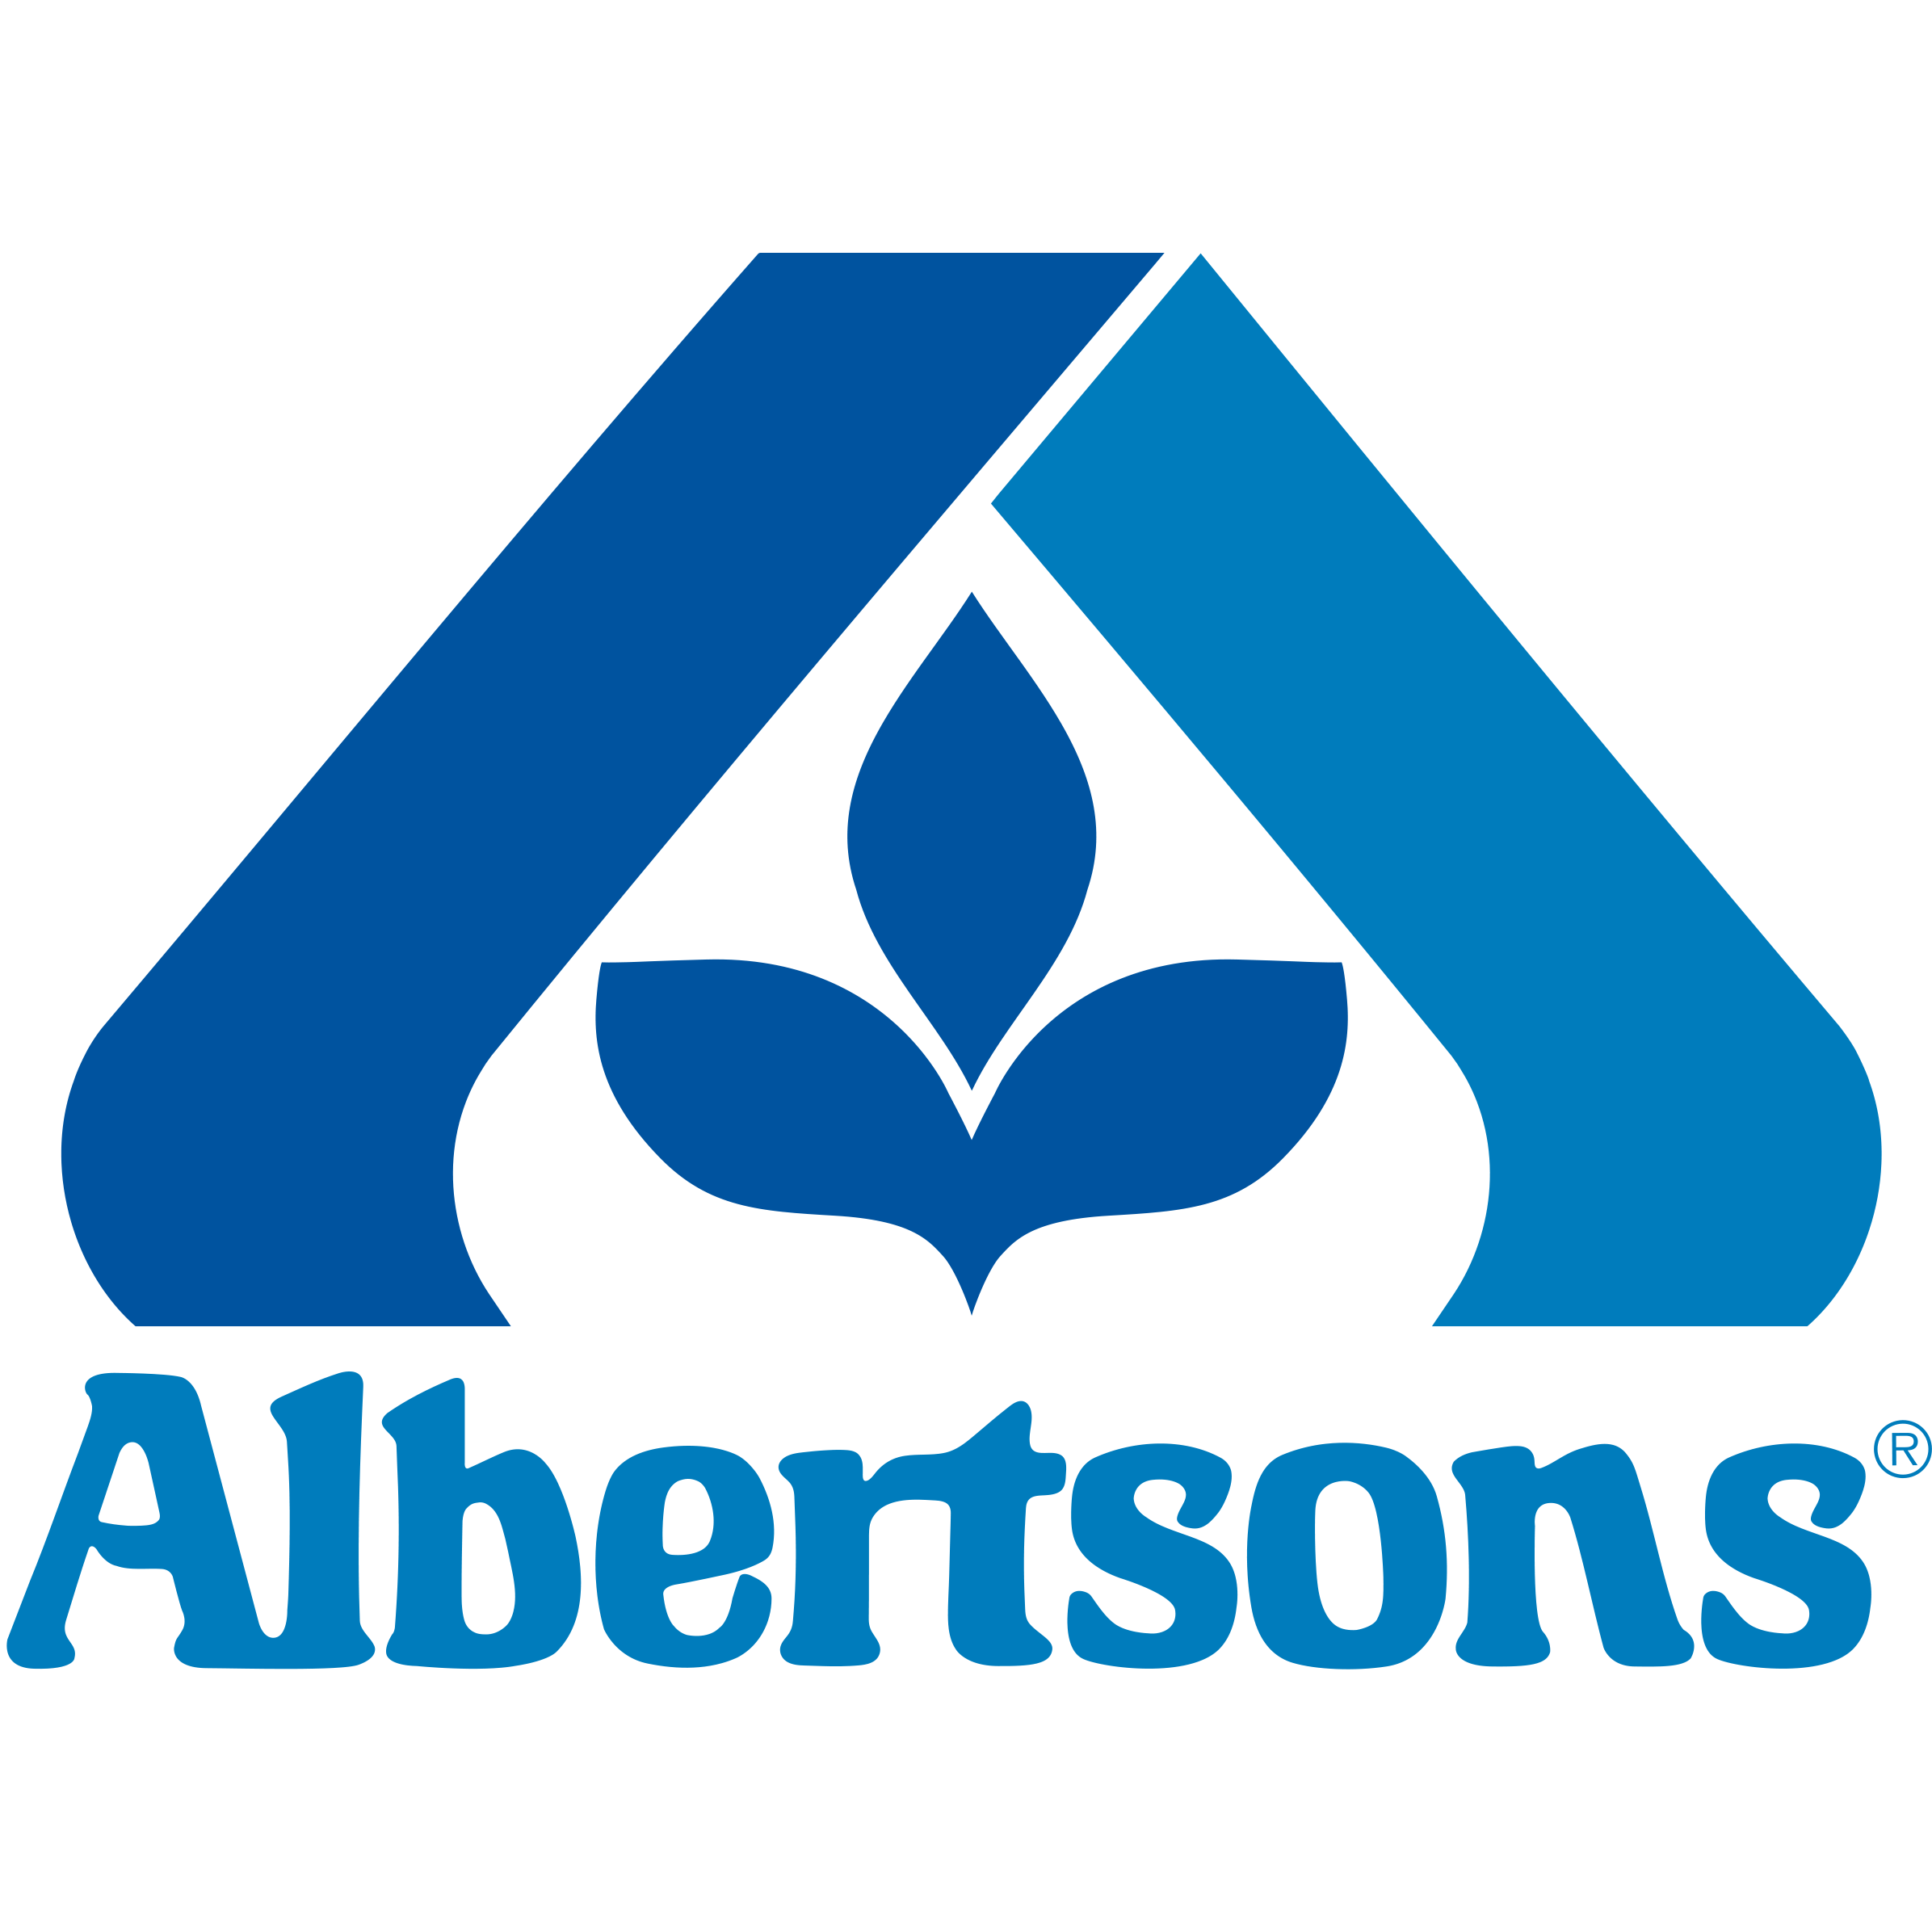 Albertsons Pharmacy - Huntington Beach, CA - Pharmacist